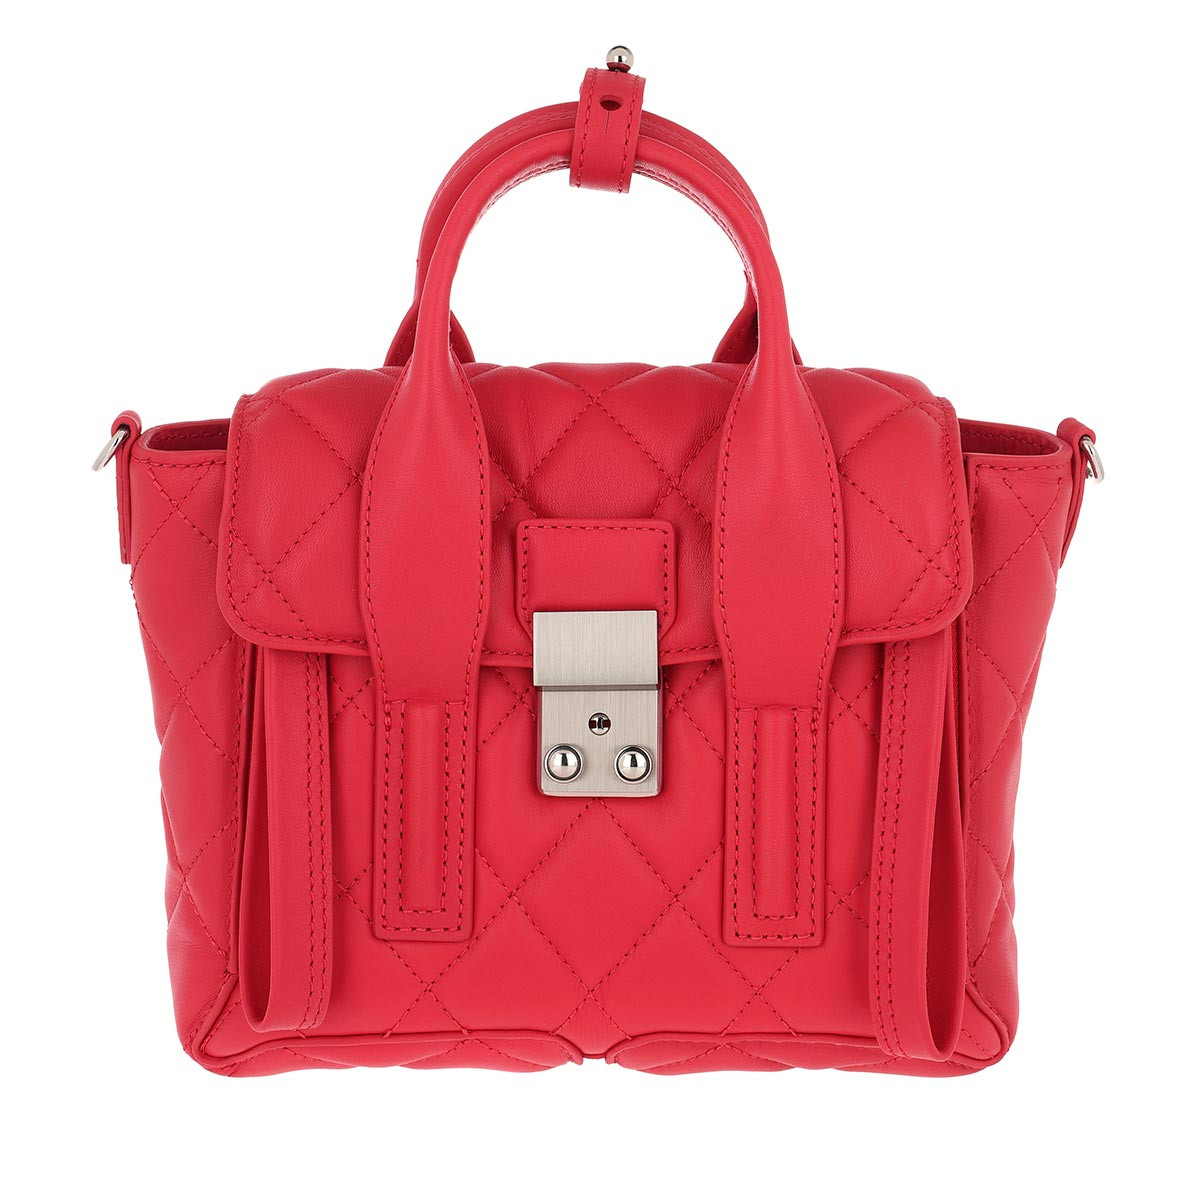 3.1 Phillip Lim Tote - Pashli Mini Satchel Coral - in rot - für Damen